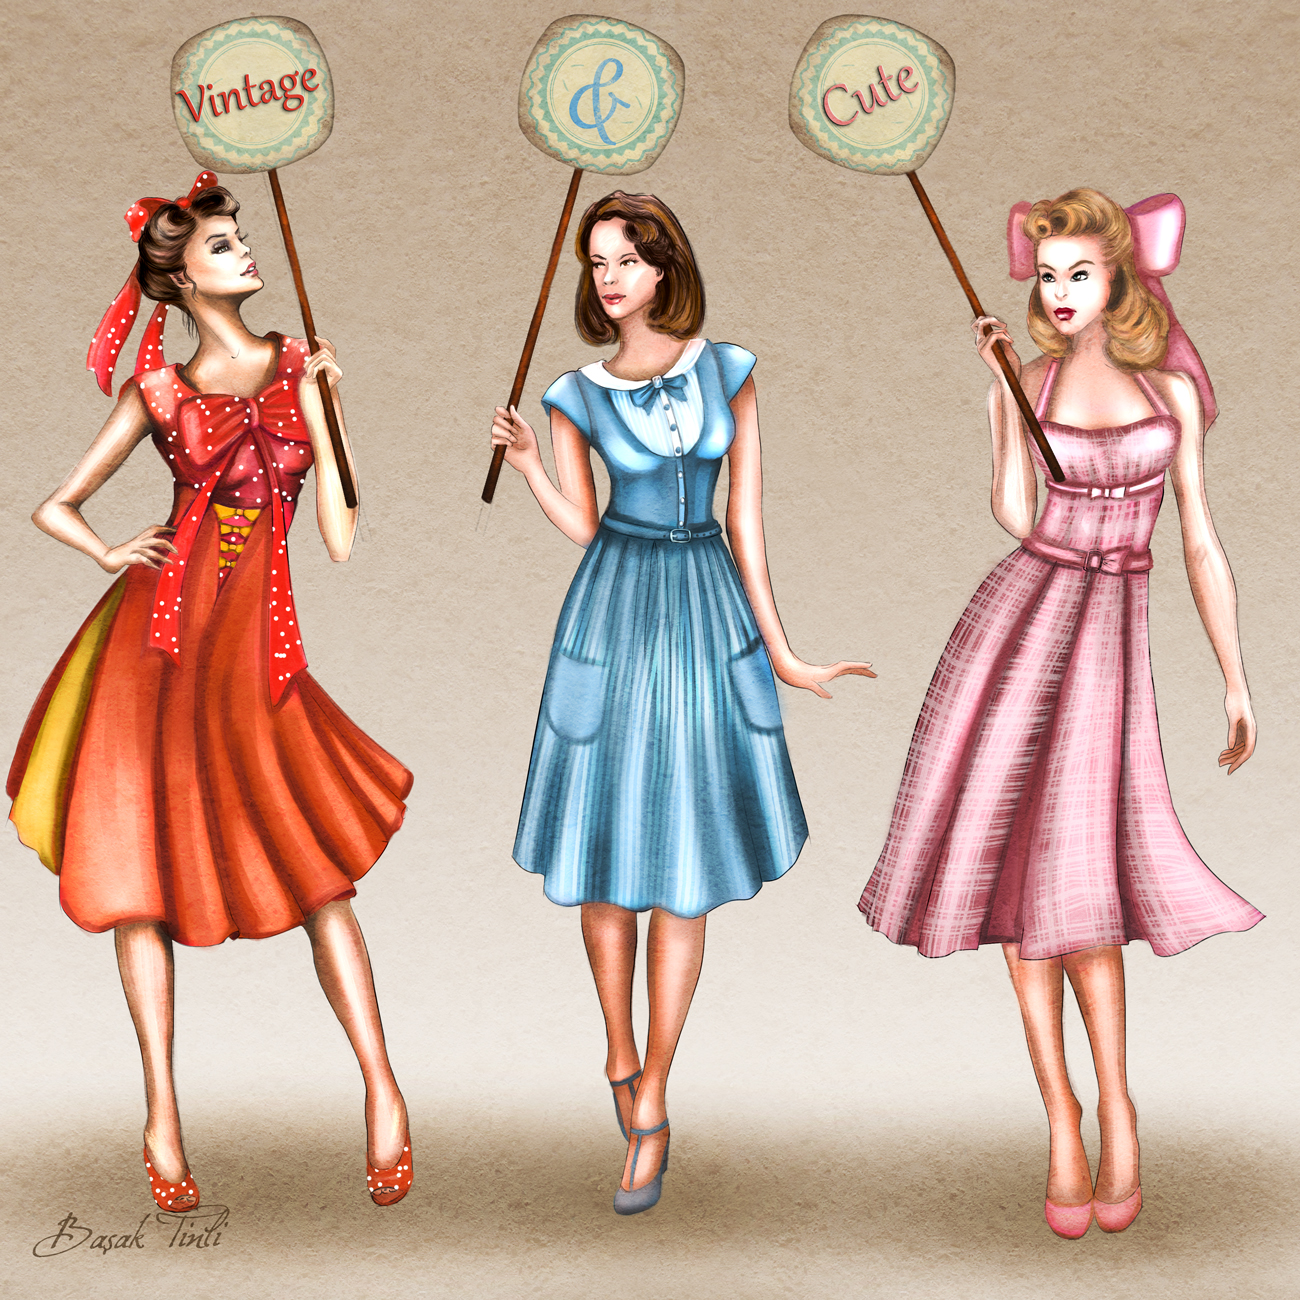 50s Inspired Vintage Dresses Fashion Illustration By Basaktinli On Deviantart